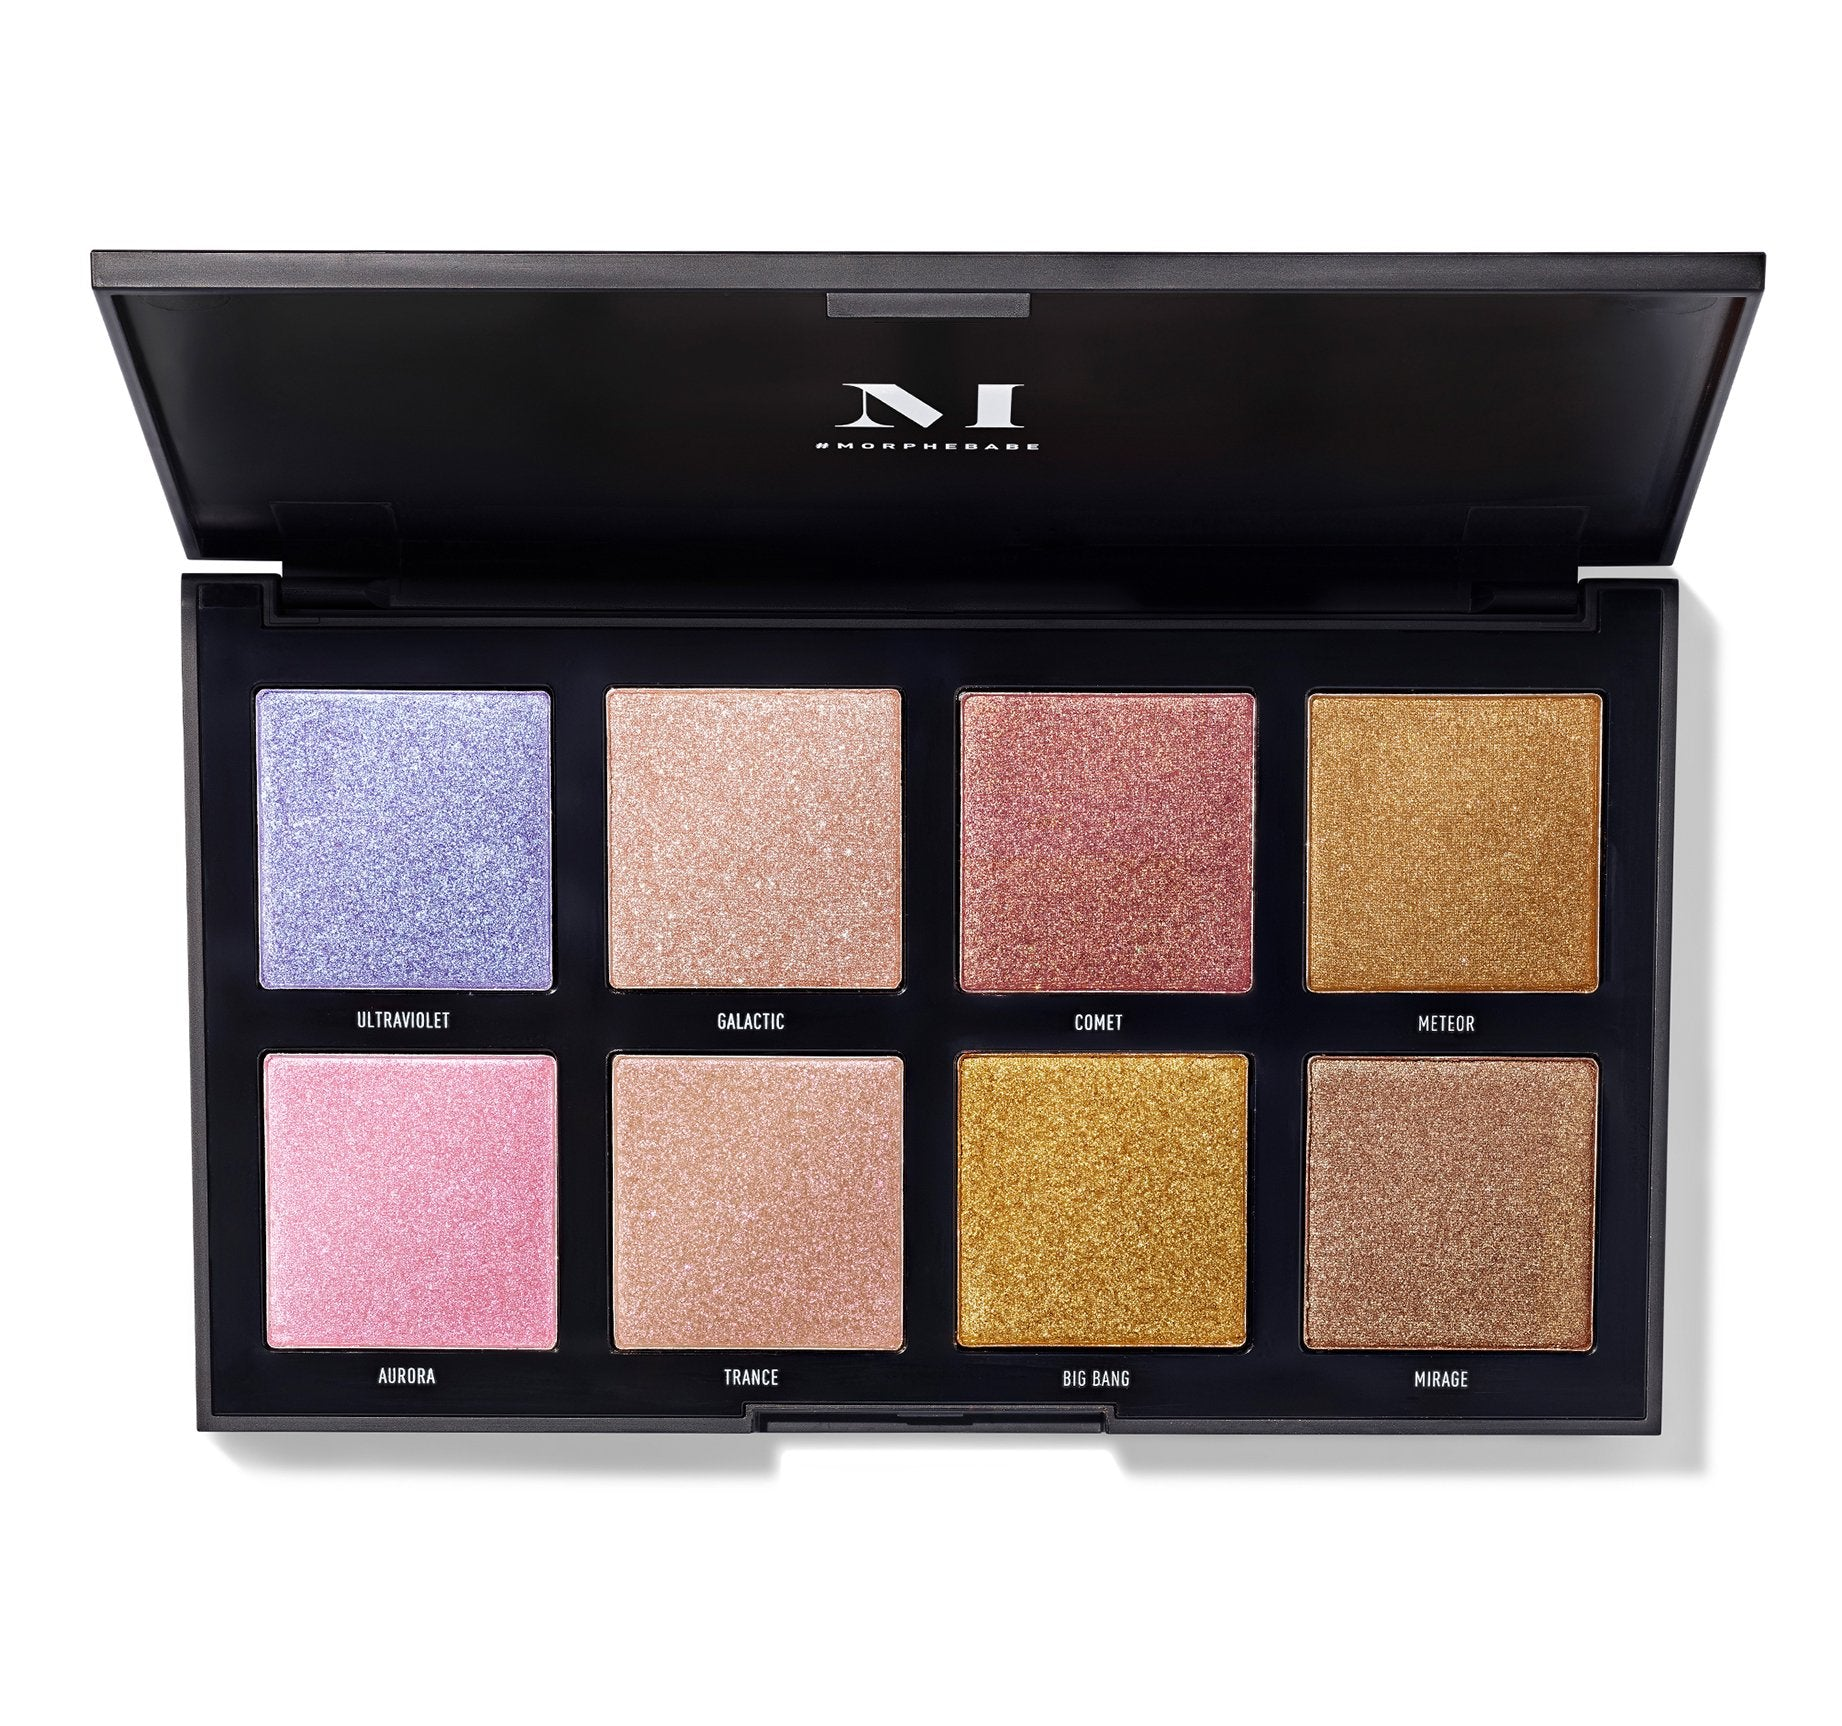 8S STELLAR IMPACT HIGHLIGHTER PALETTE, view larger image